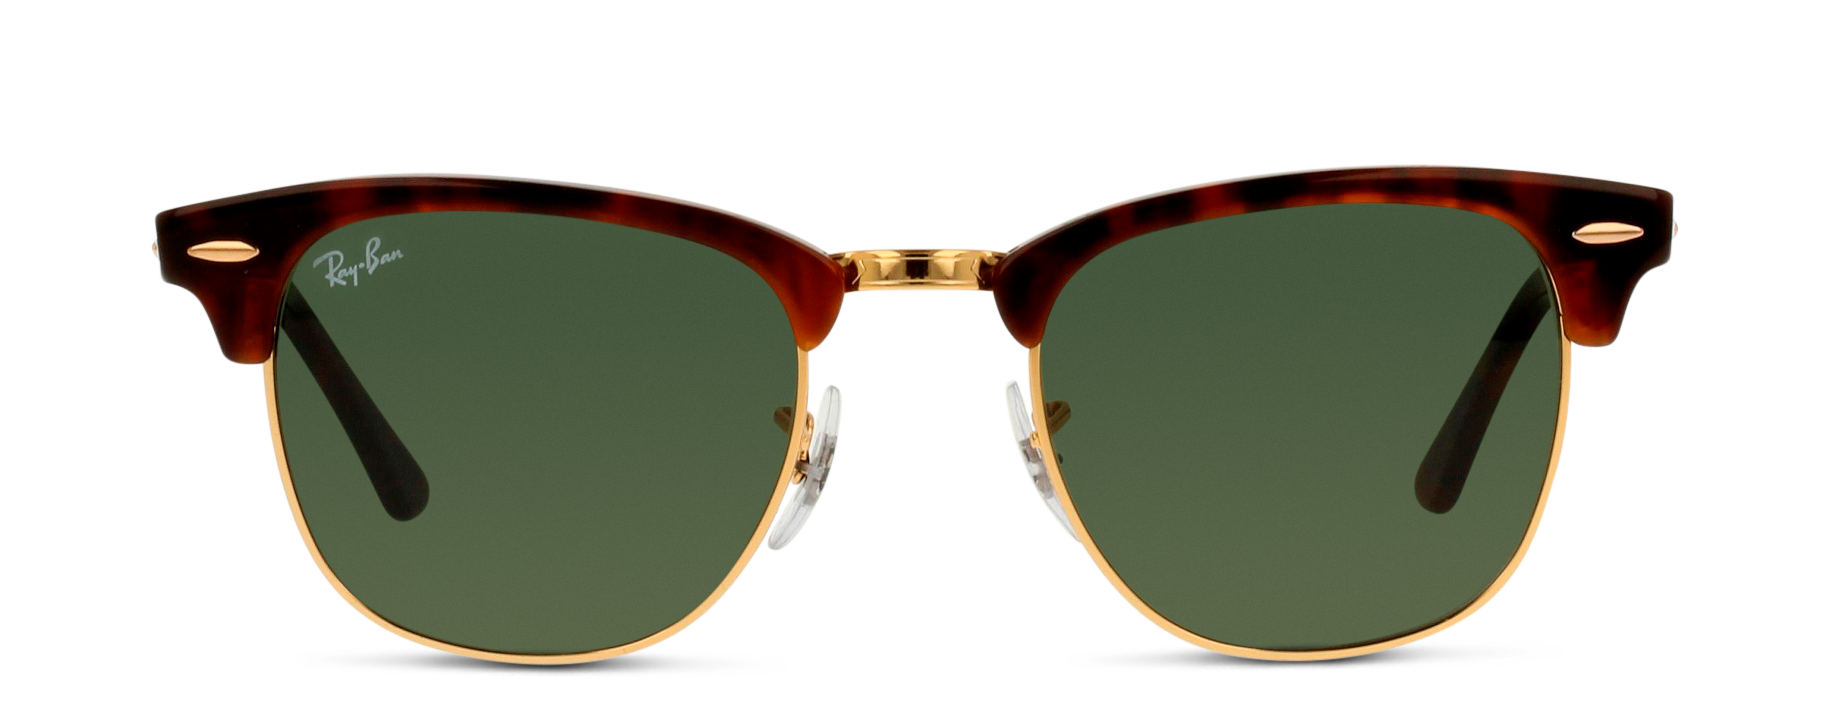 Front Ray-Ban Ray-Ban 3016 W0366 51/21 Bruin, Goud/Groen